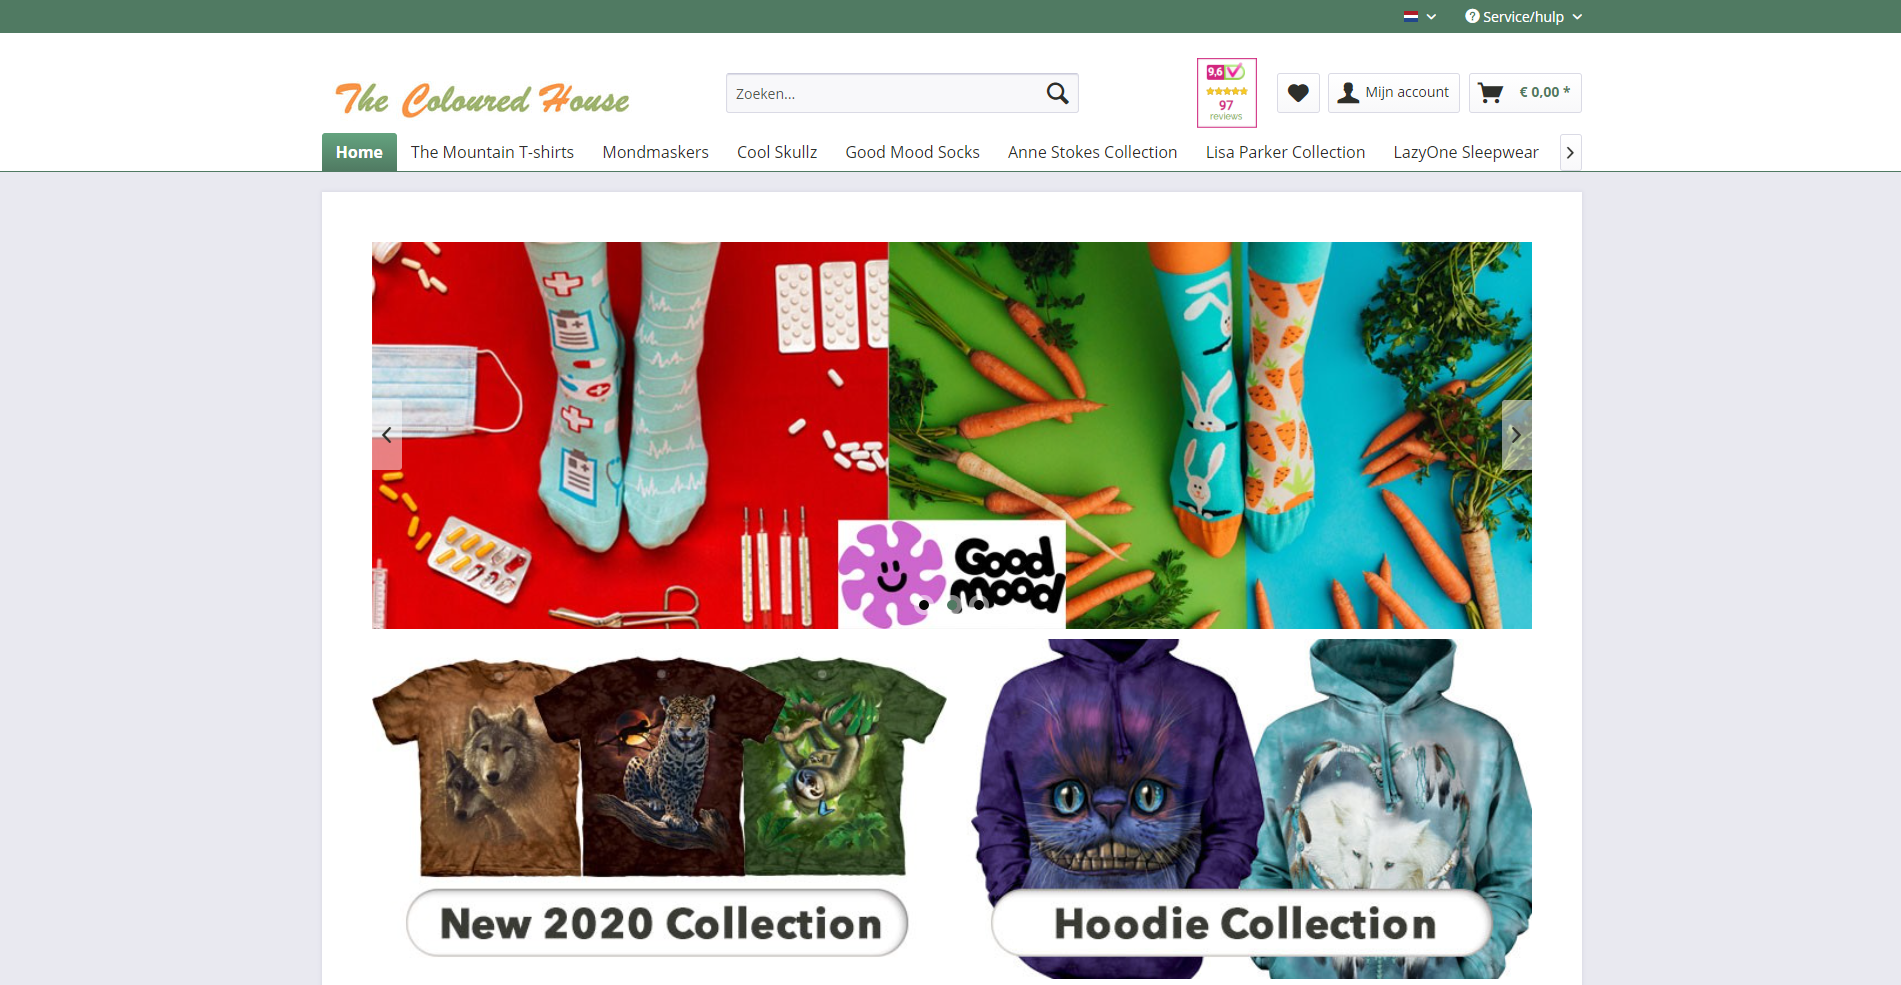 The Colouredhouse Homepage